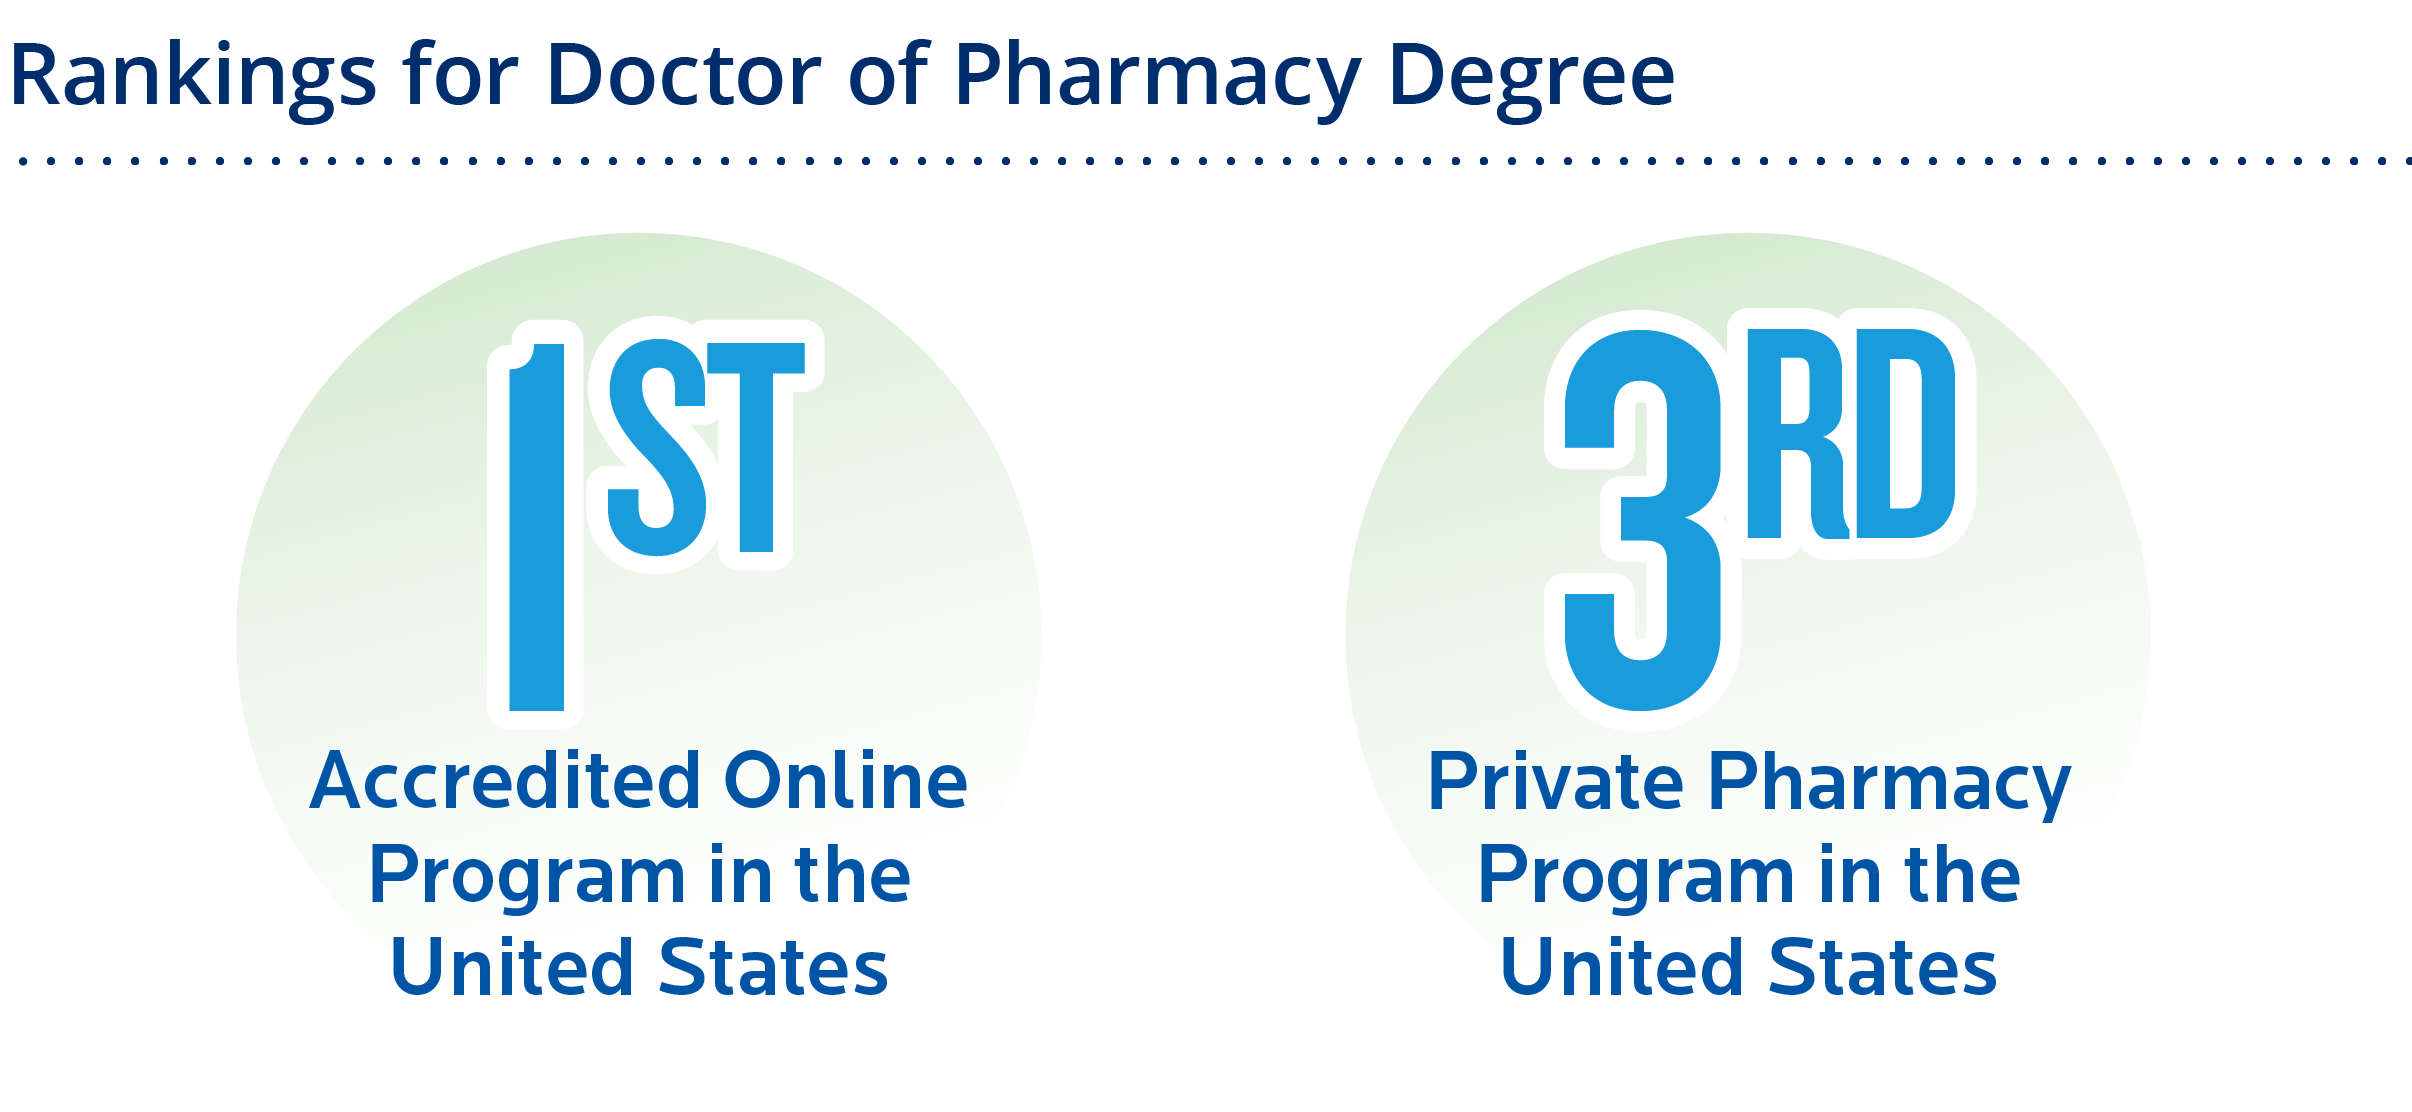 1st accredited online program in US and 3rd private program in the US